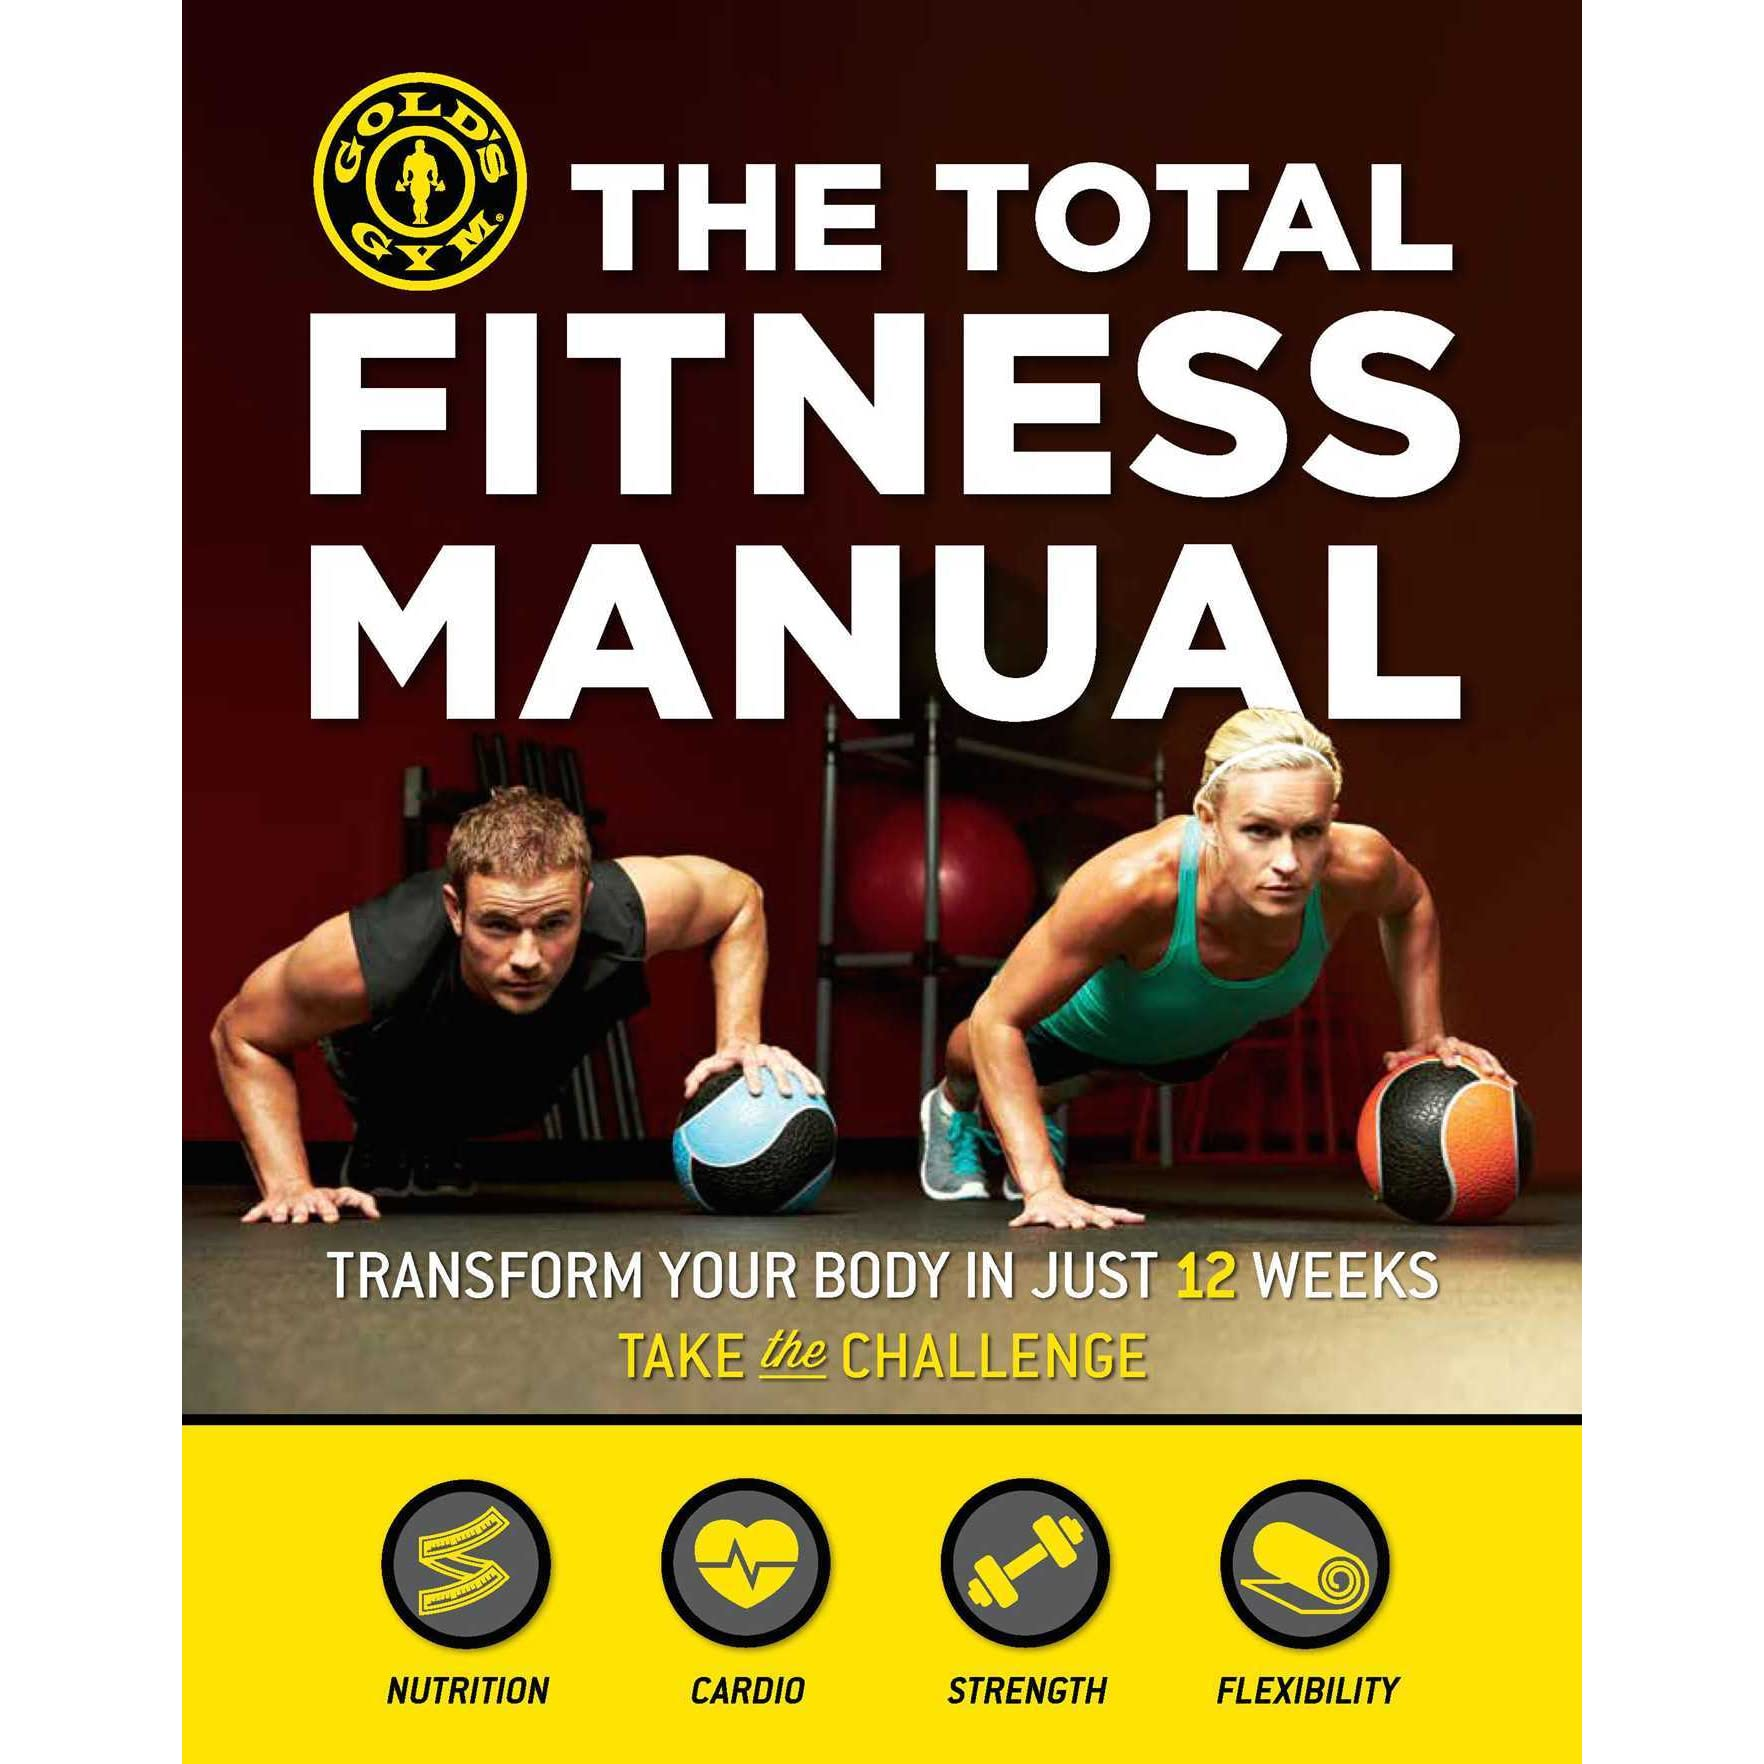 The Total Fitness Manual: Transform Your Body in Just 12 Weeks by Gold's Gym